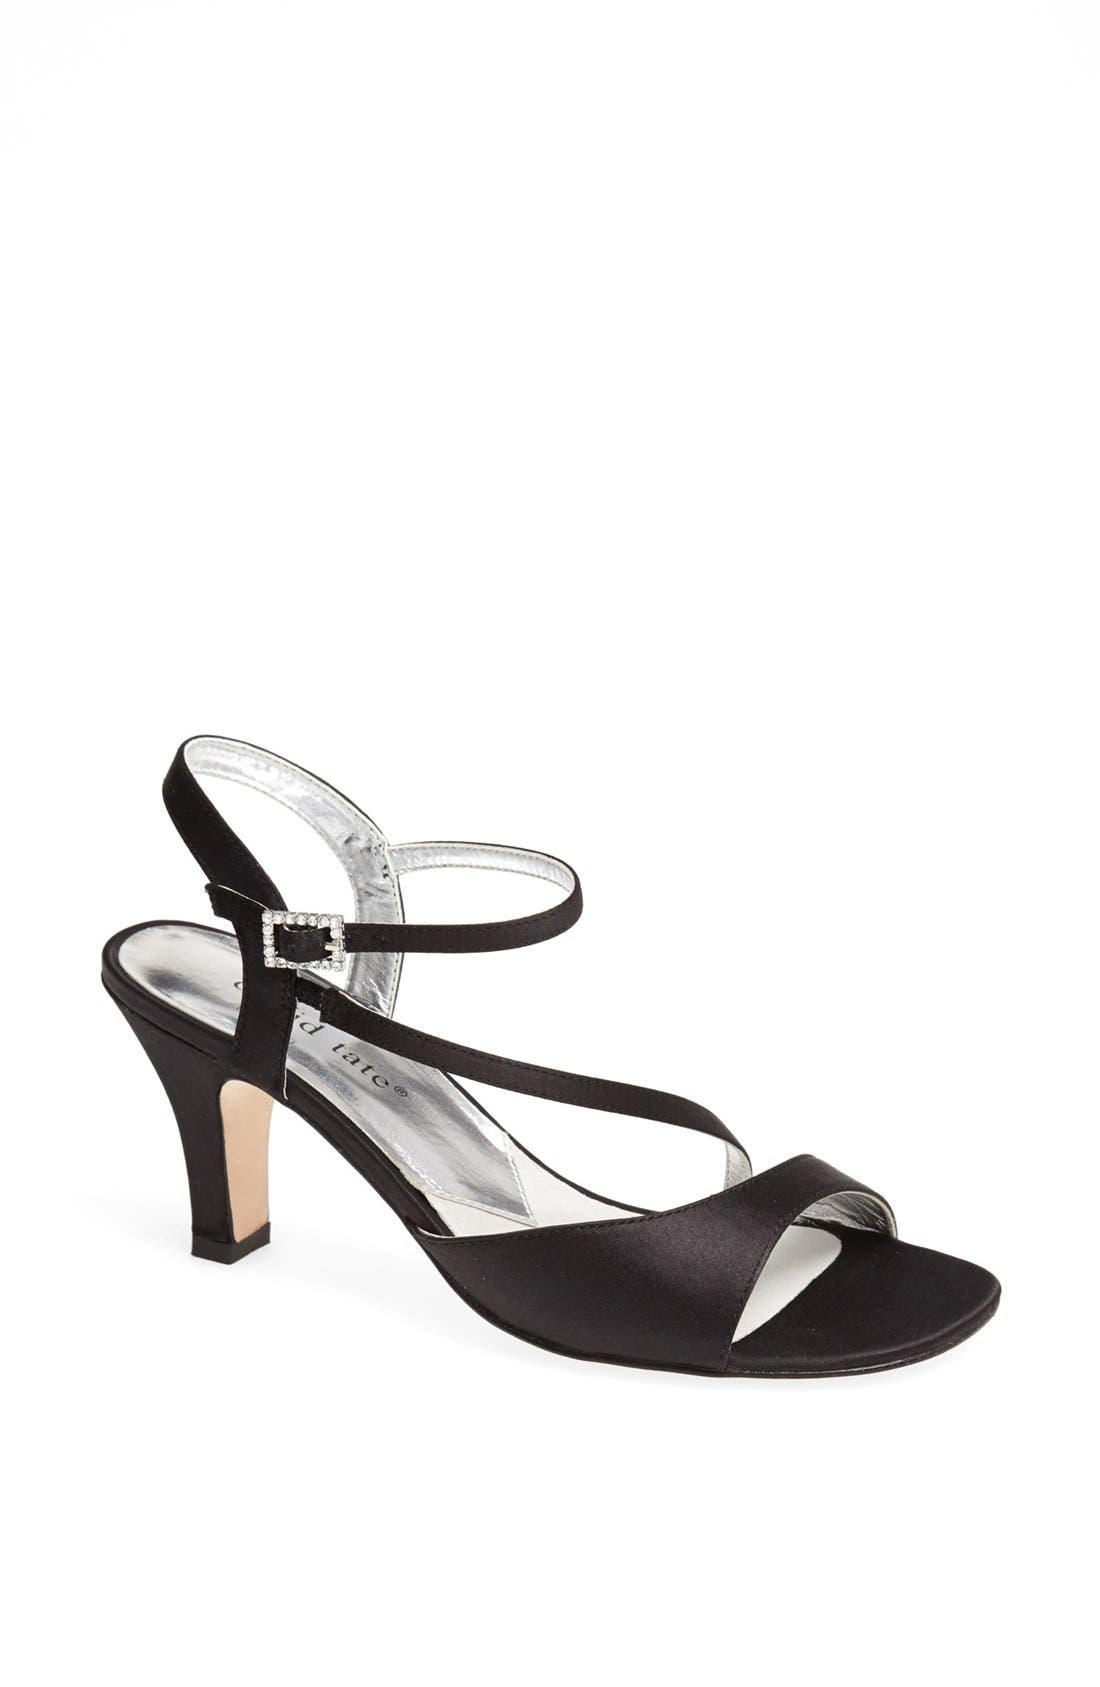 Alternate Image 1 Selected - David Tate 'Beverly' Sandal